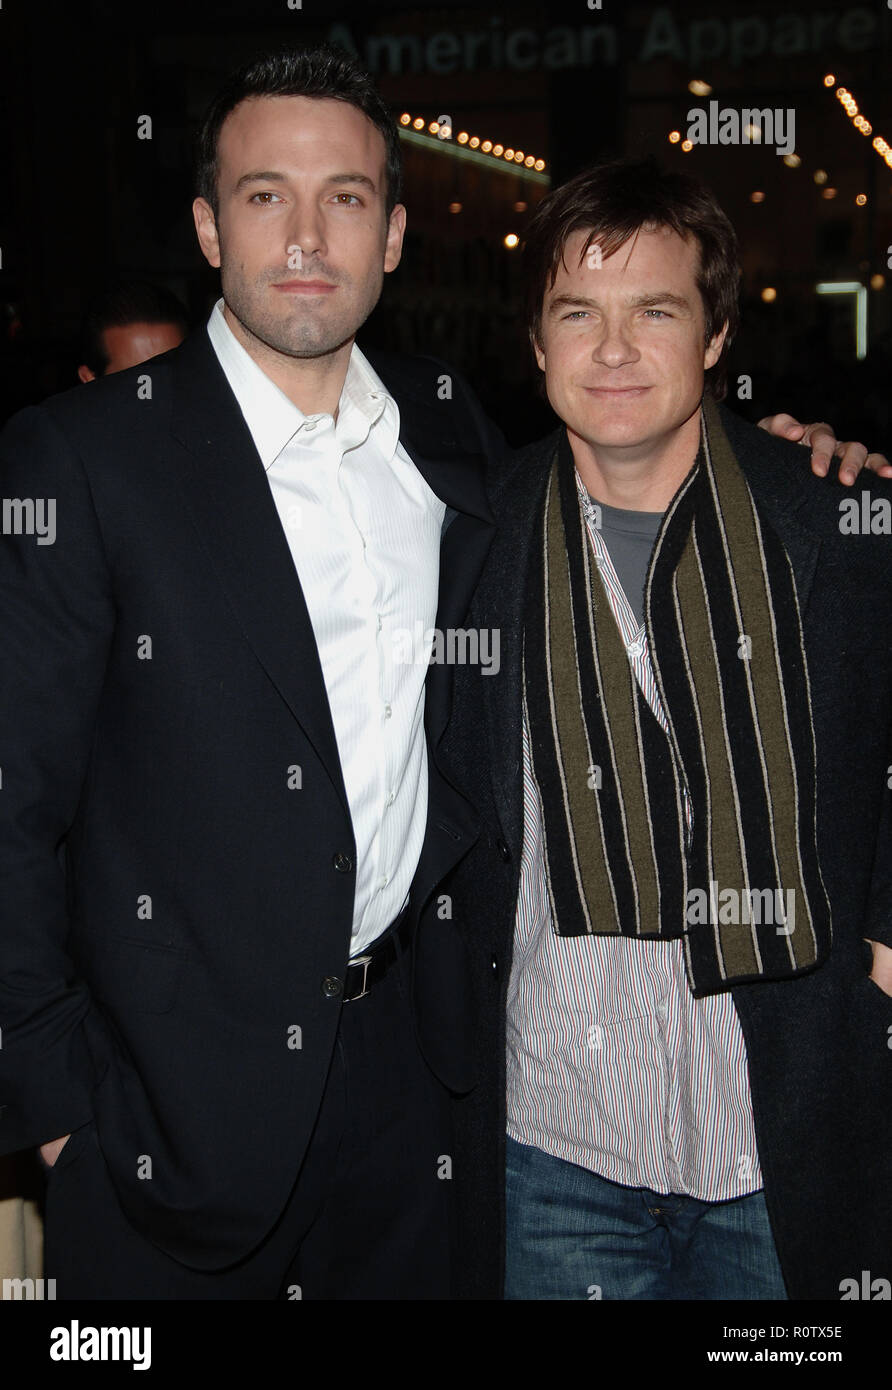 Ben Affleck and Jason Bateman arriving at the Smokin' Aces at the Chinese Theatre In Los Angeles. January 18, 2007.  3/4          -            Affleck - Stock Image